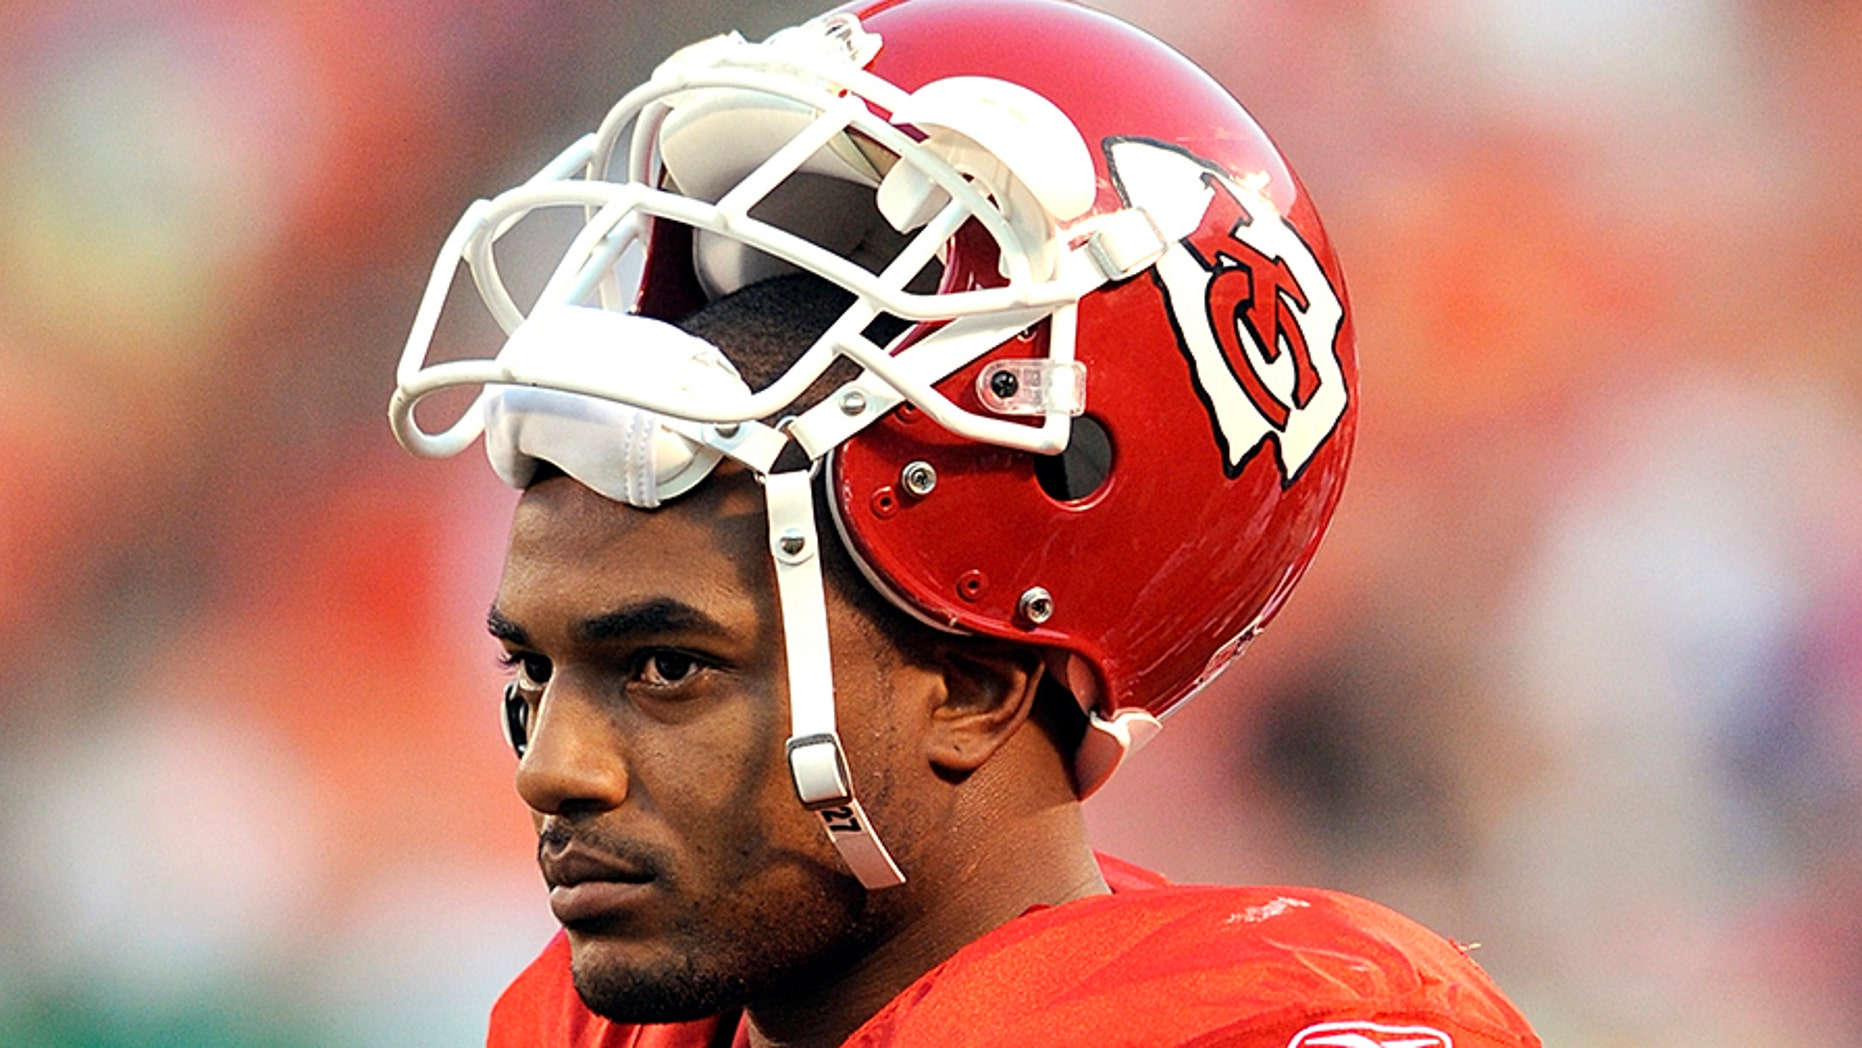 Larry Johnson was drafted by the Kansas City Chiefs in 2003 after playing for Penn State. He told the Washington Post that he believes he's living with CTE.